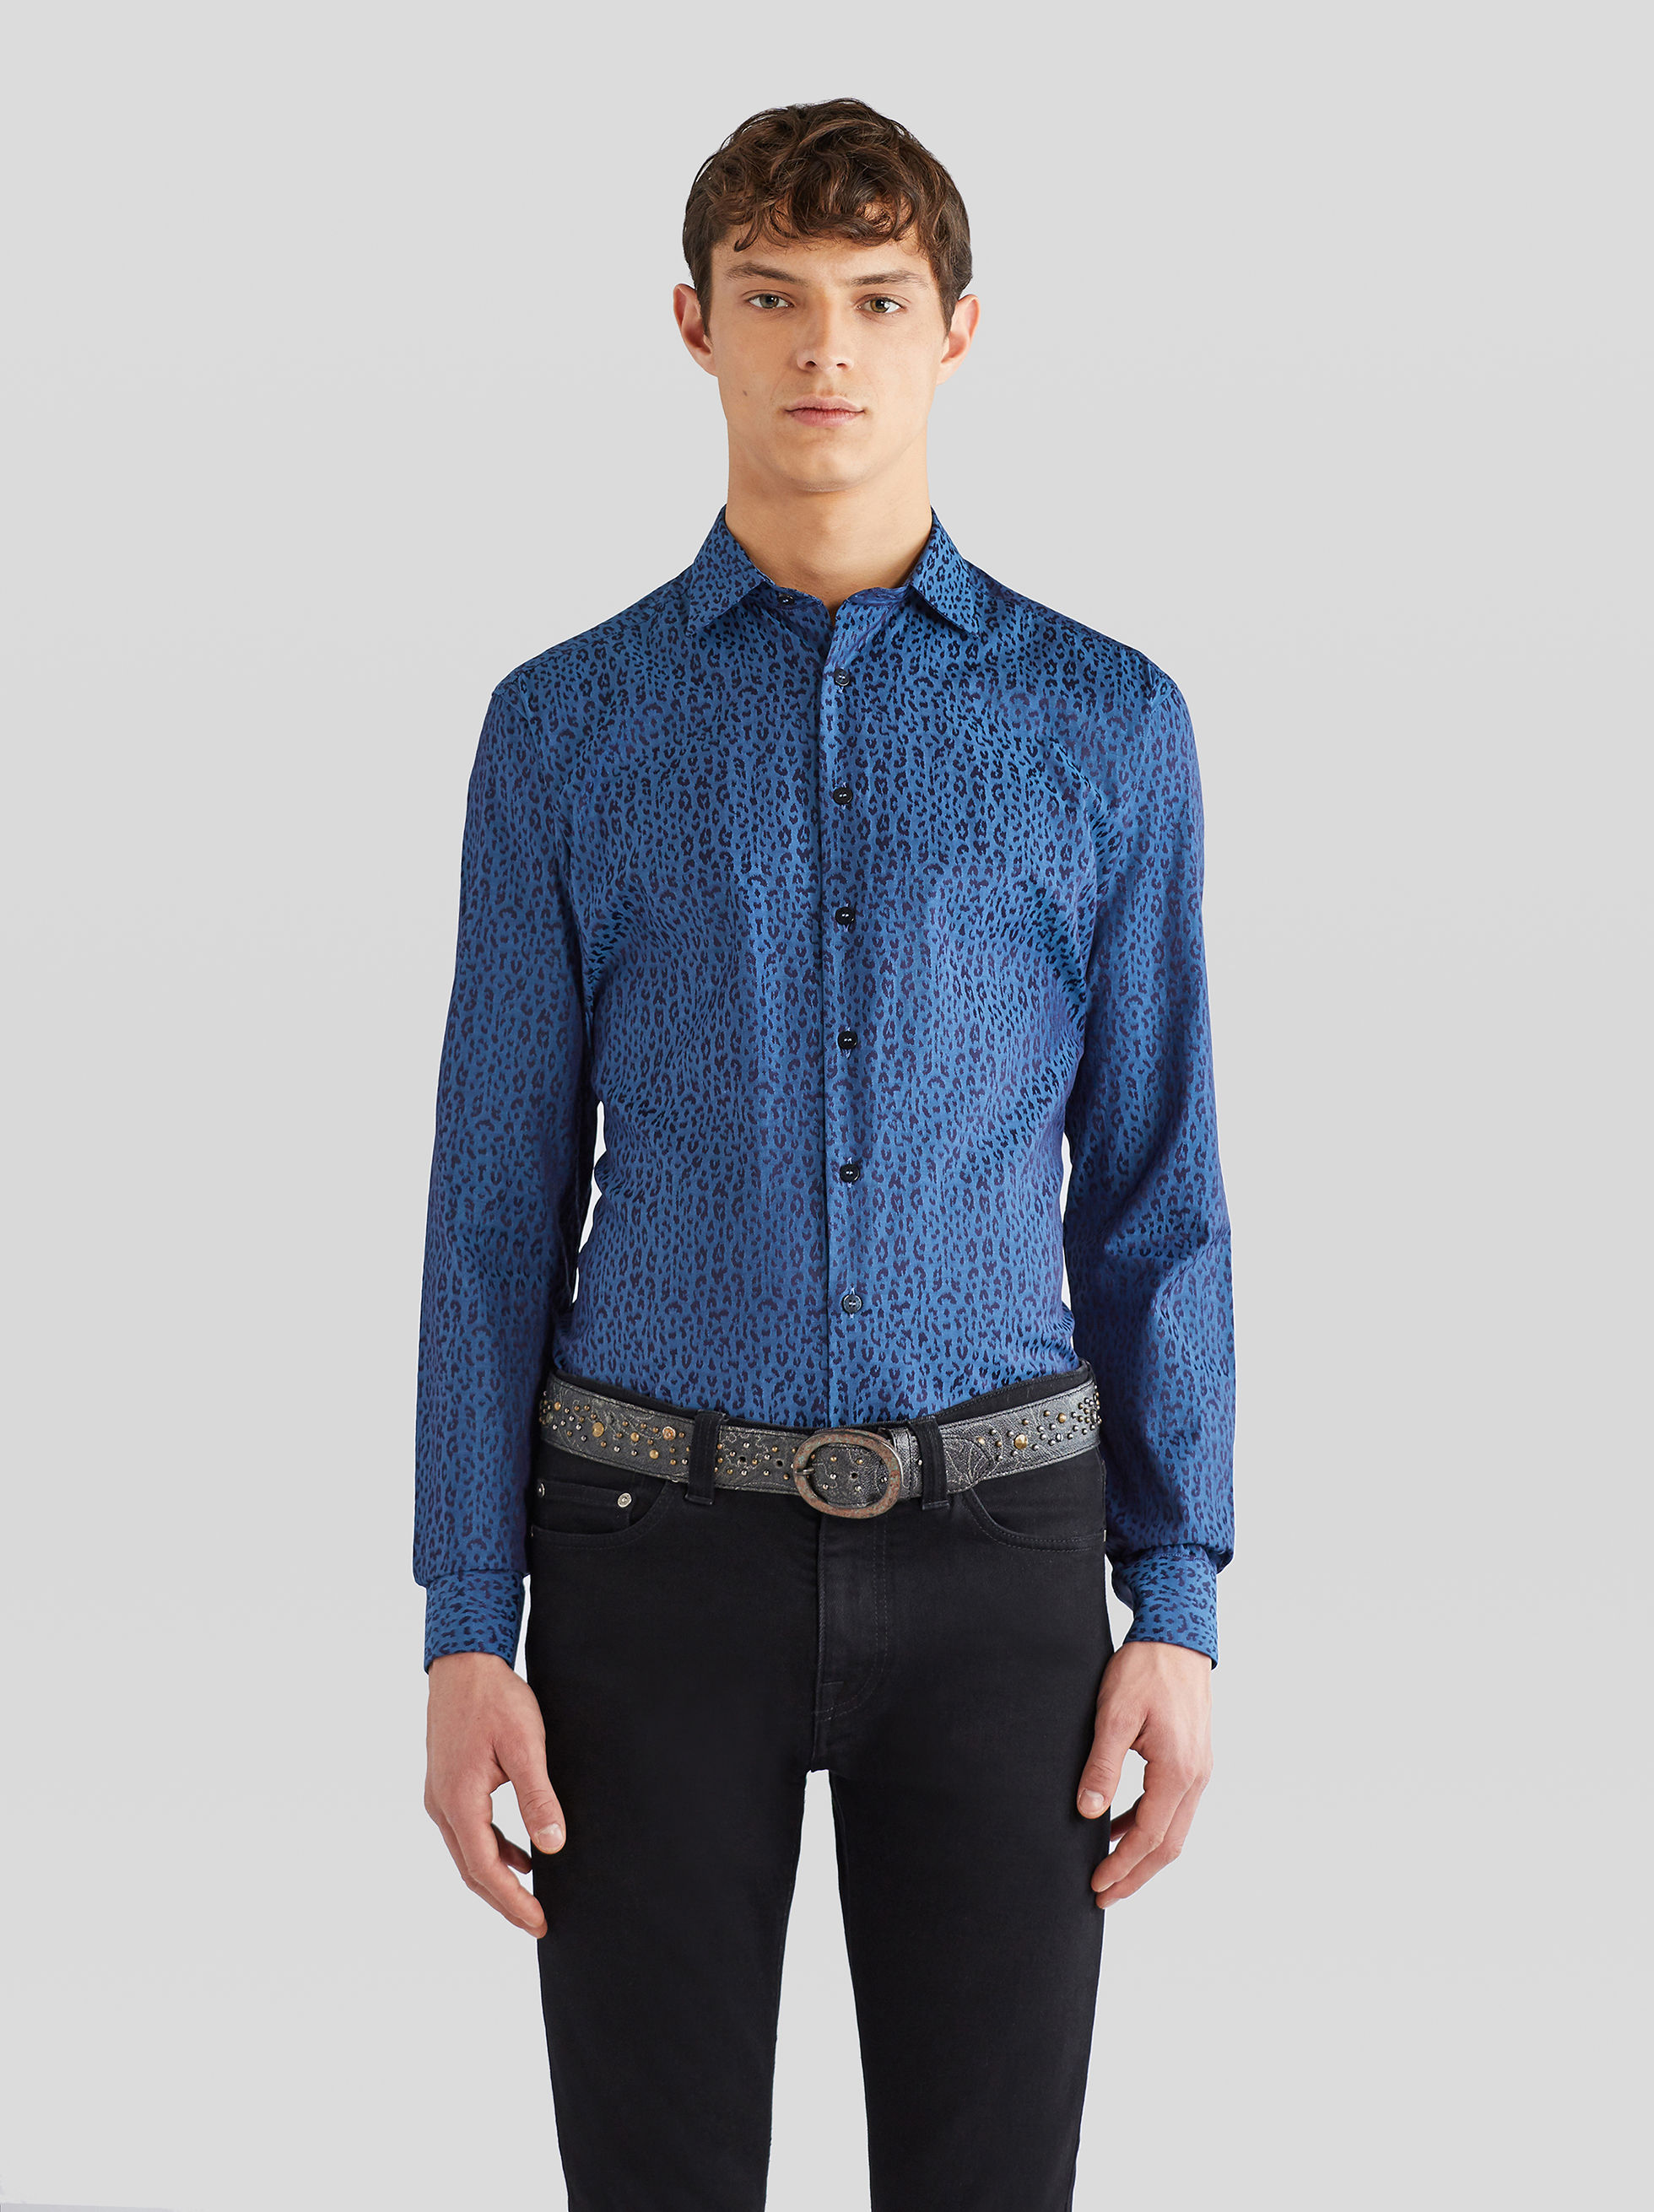 JACQUARD SHIRT WITH GIRAFFE PATTERN